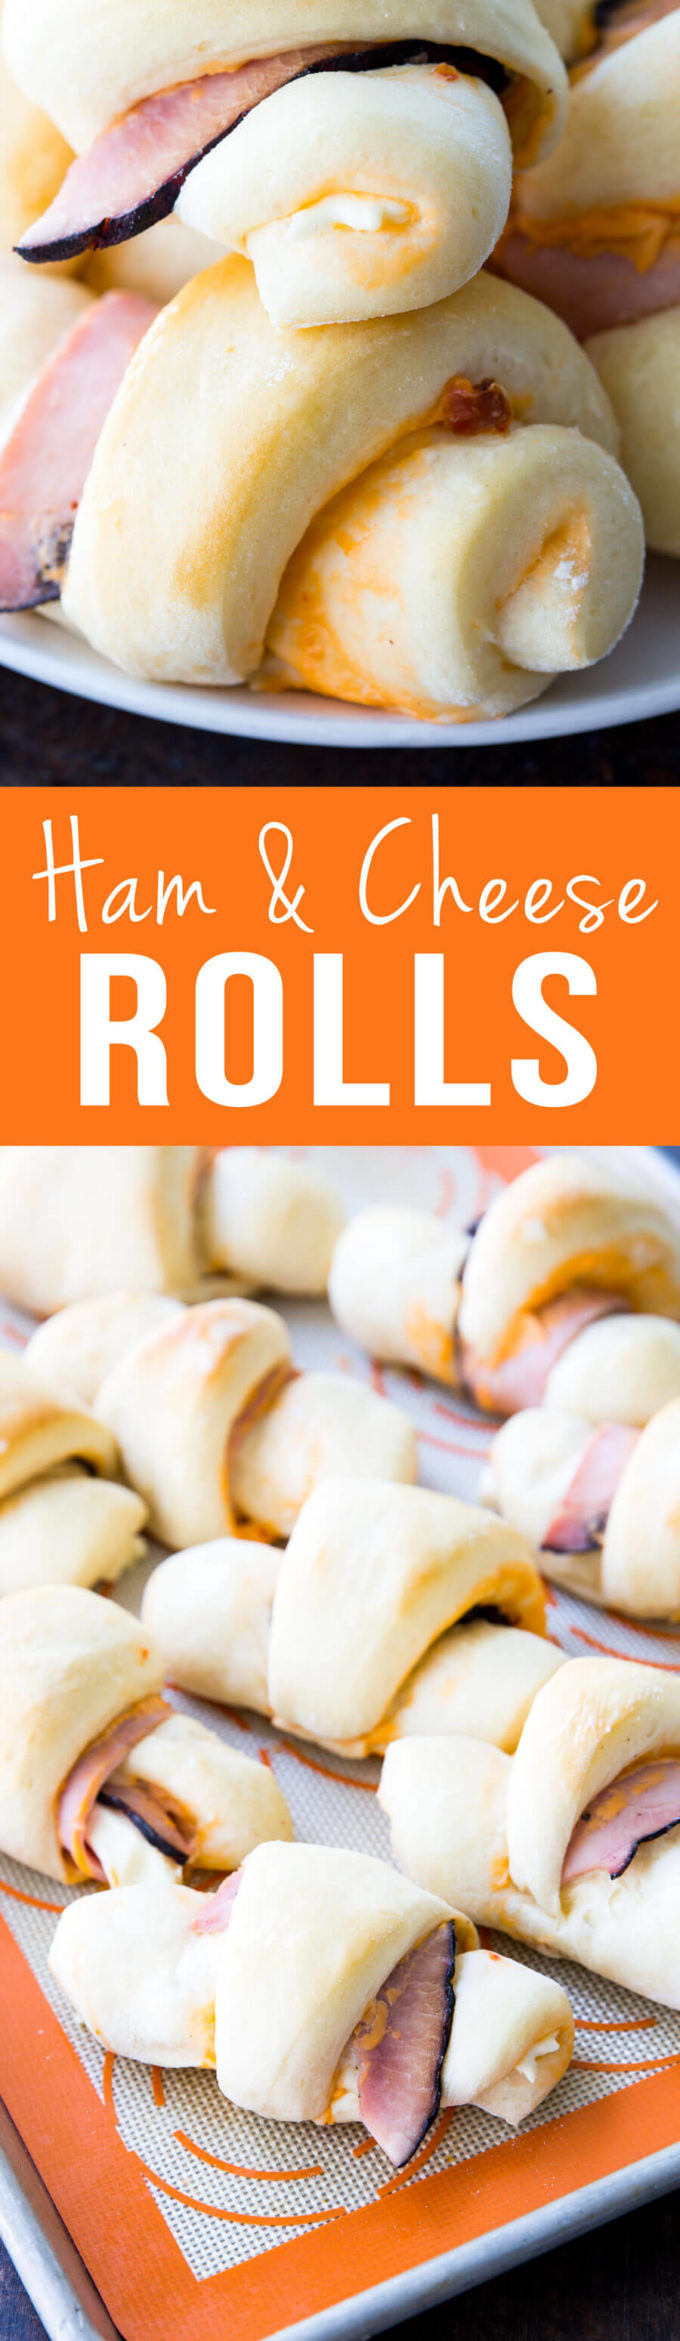 Ham and Cheese Rolls are the best dinner! So easy and majorly delicious.